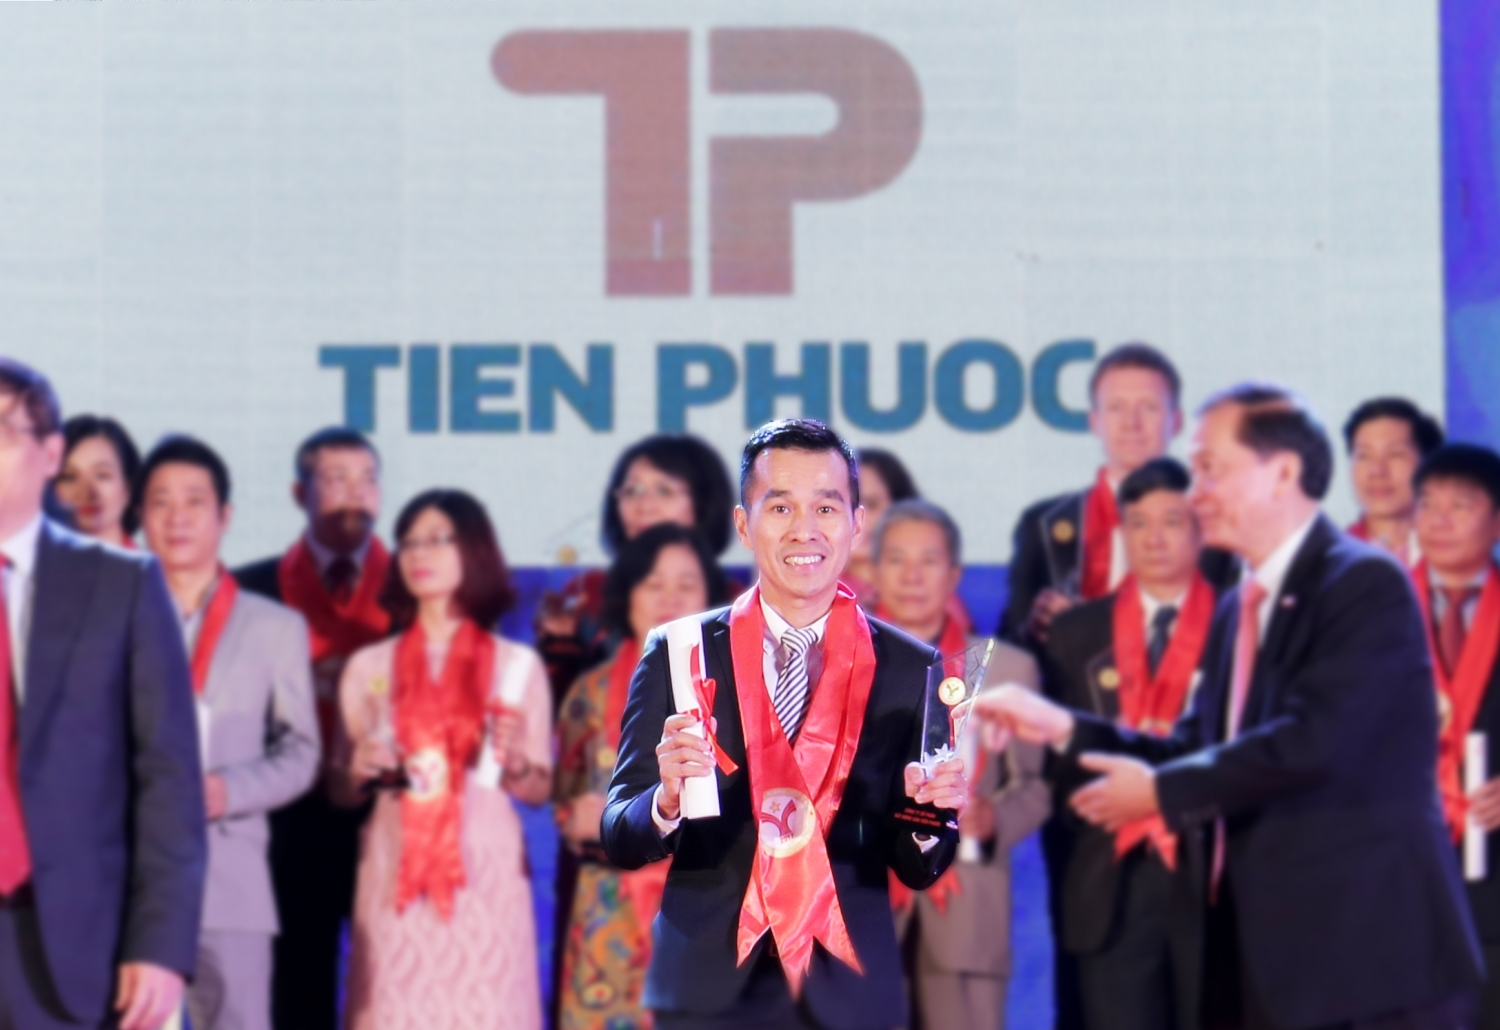 Tien Phuoc named Vietnam Top Brand of The Year